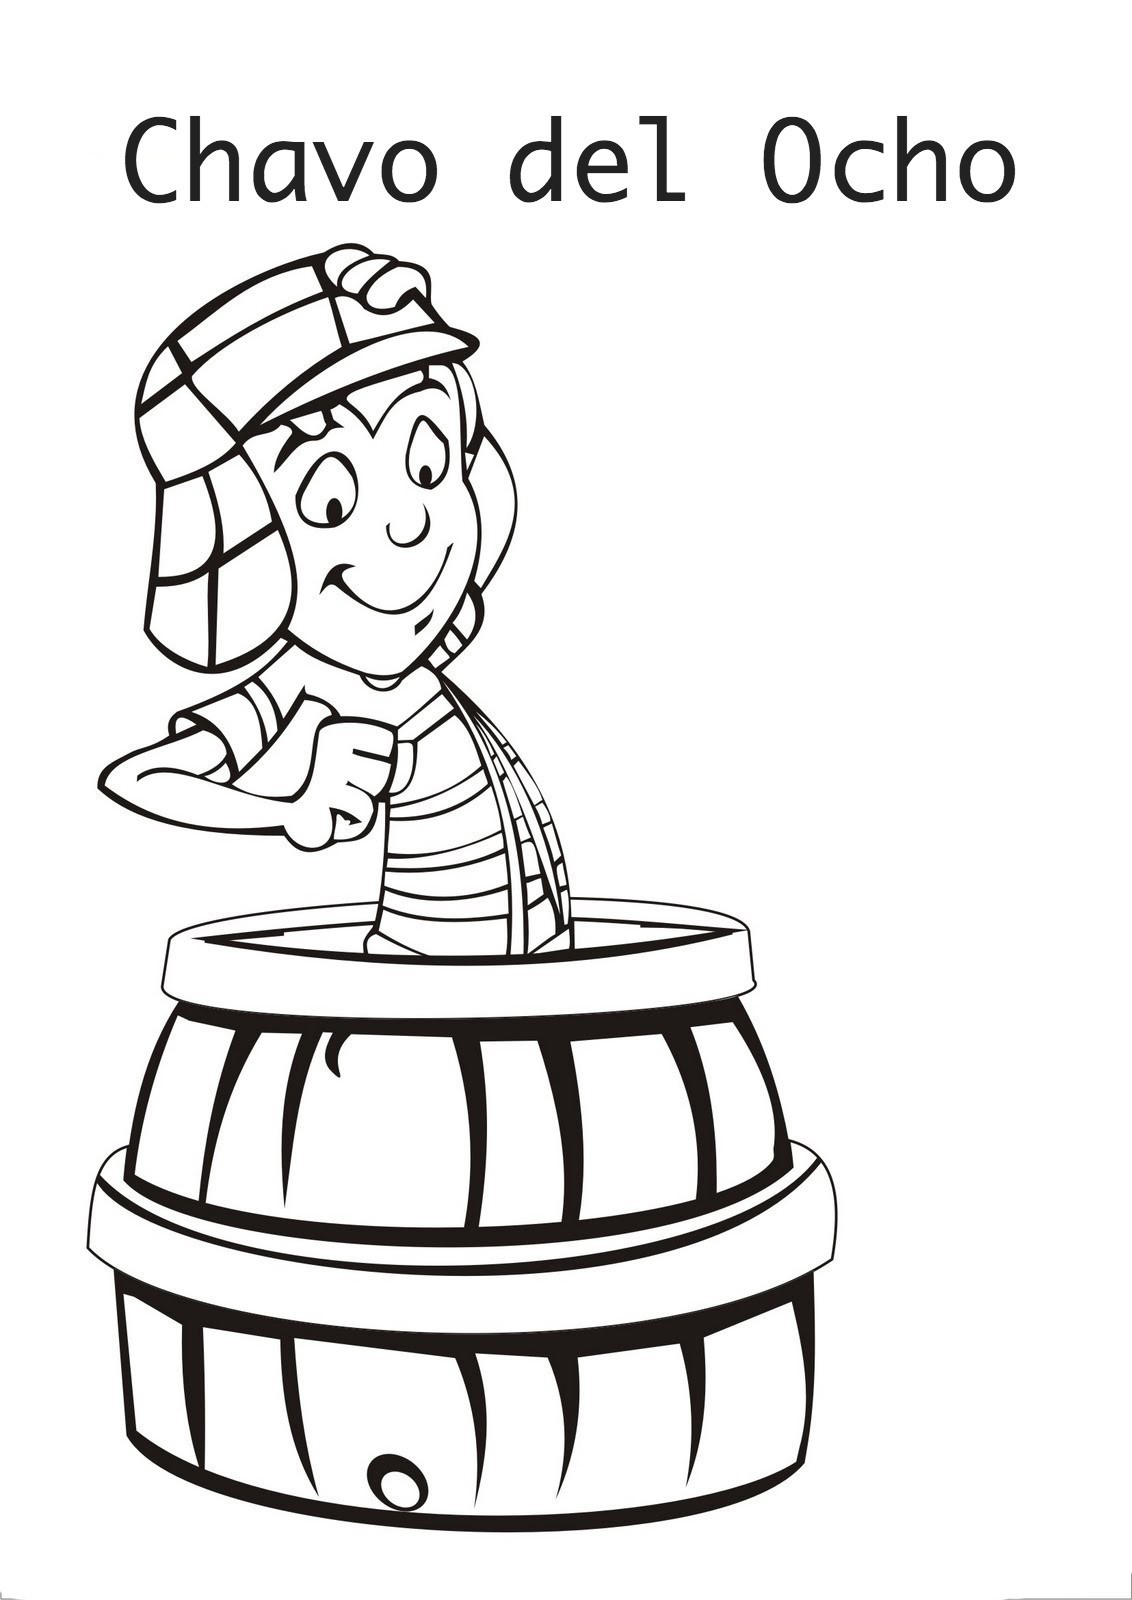 Clip Art El Chavo Del Ocho Coloring Pages coloring pages april 2016 chavo del ocho chavo